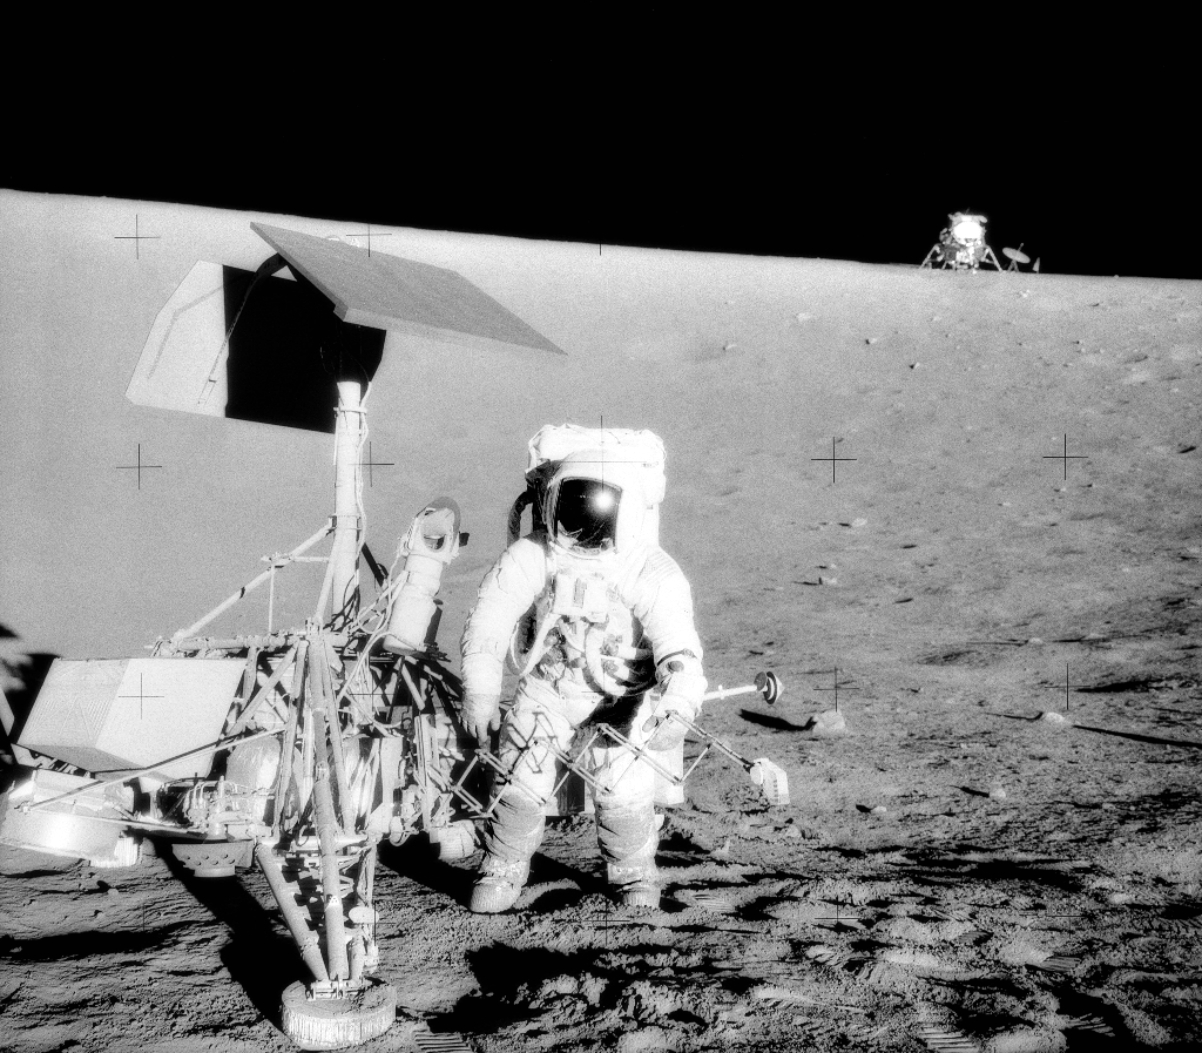 Apollo 12 Surveyor 3